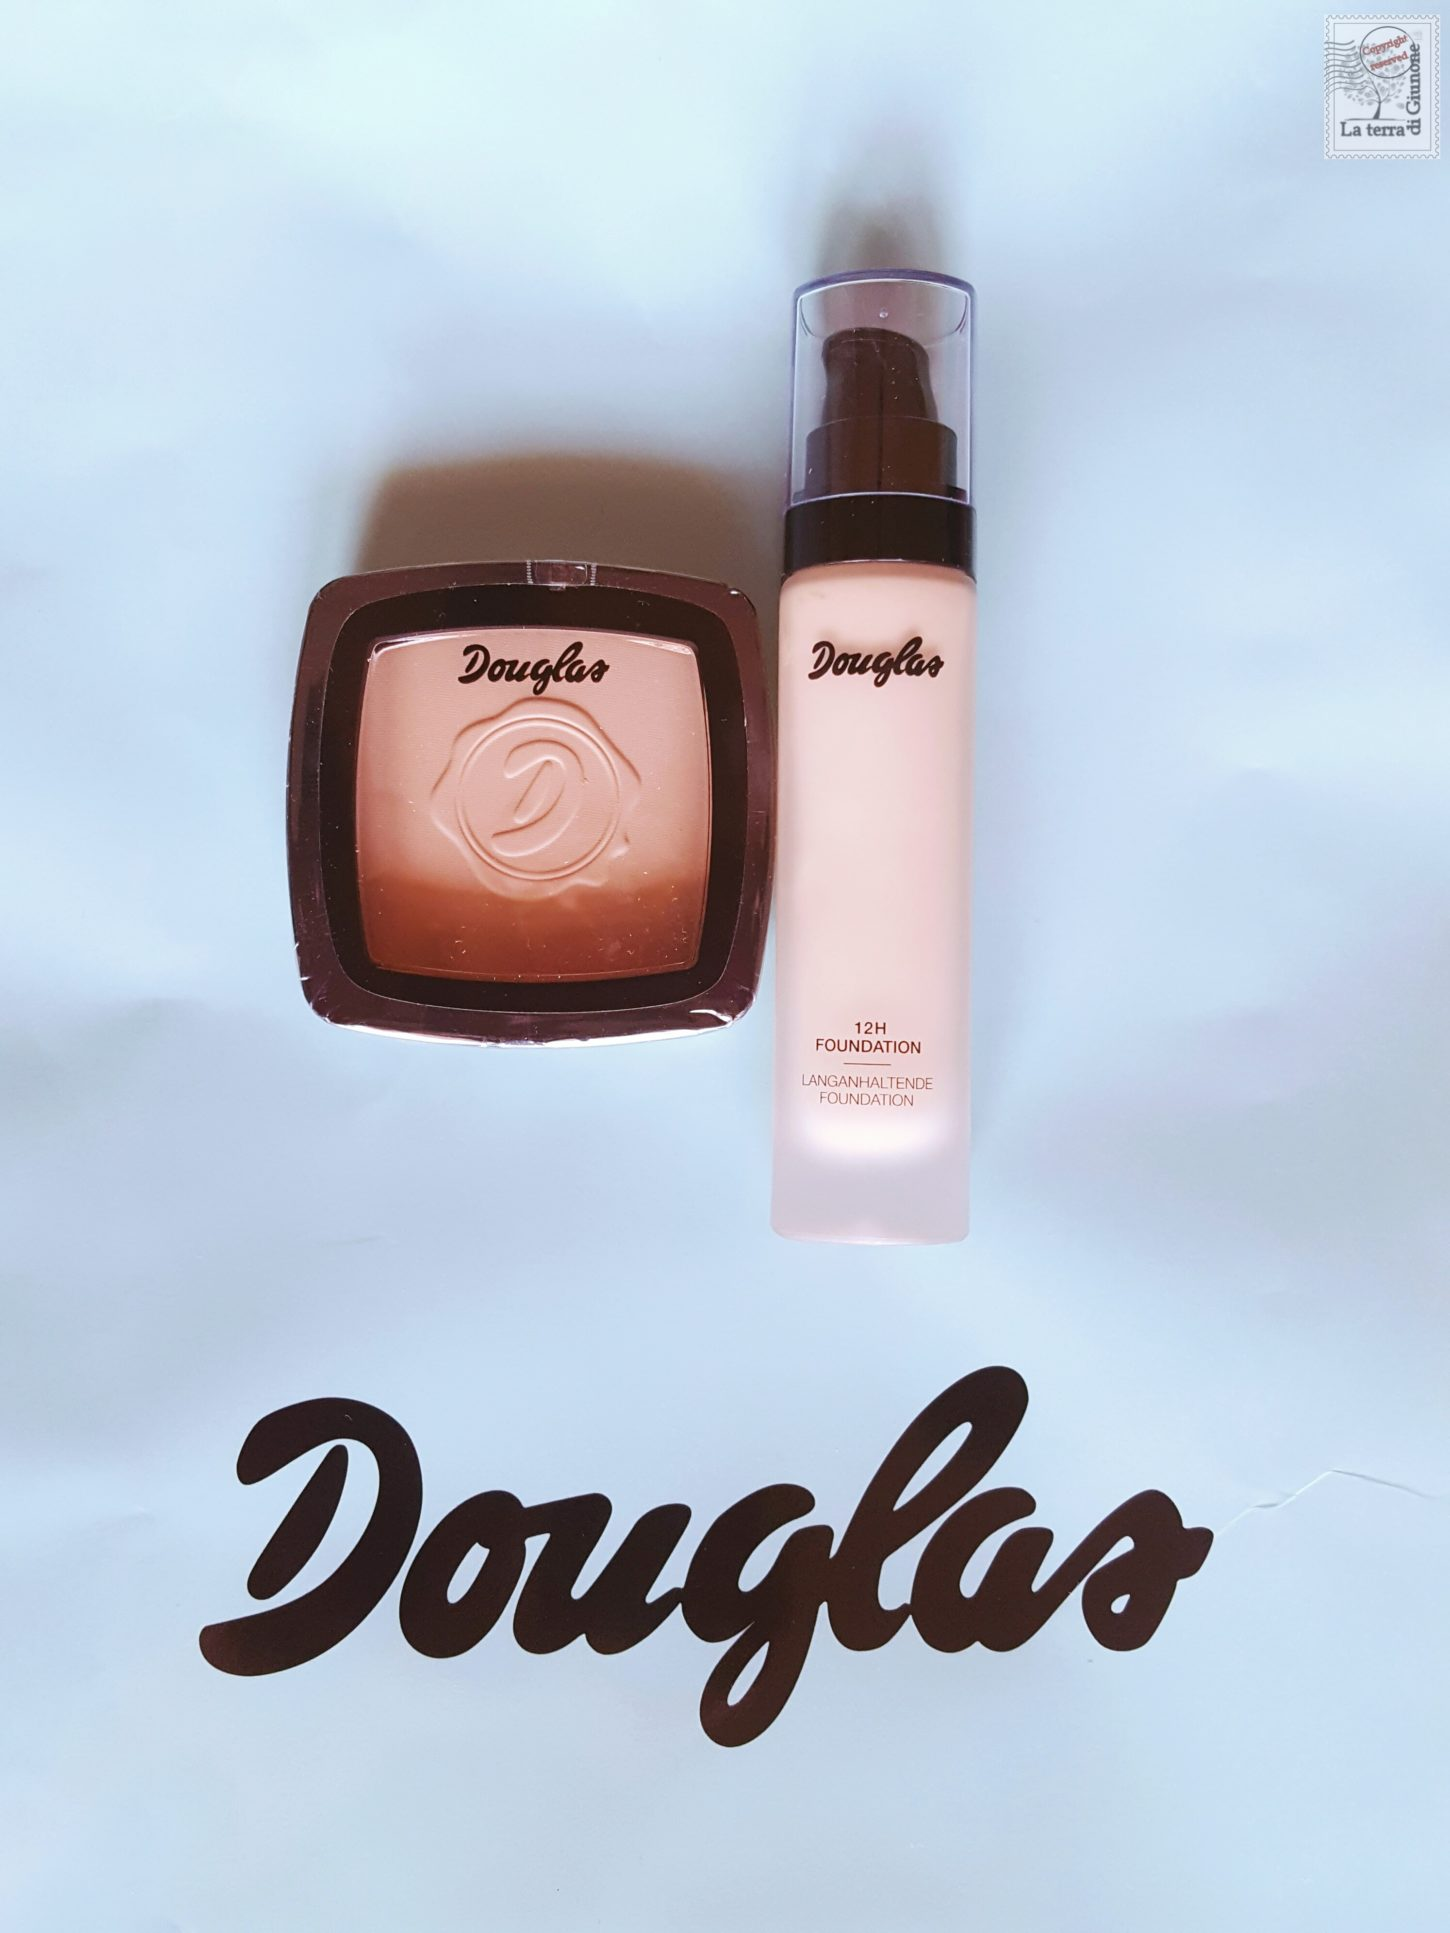 Douglas Fondotinta 12H Foundation & Cipria Mattifying Powder